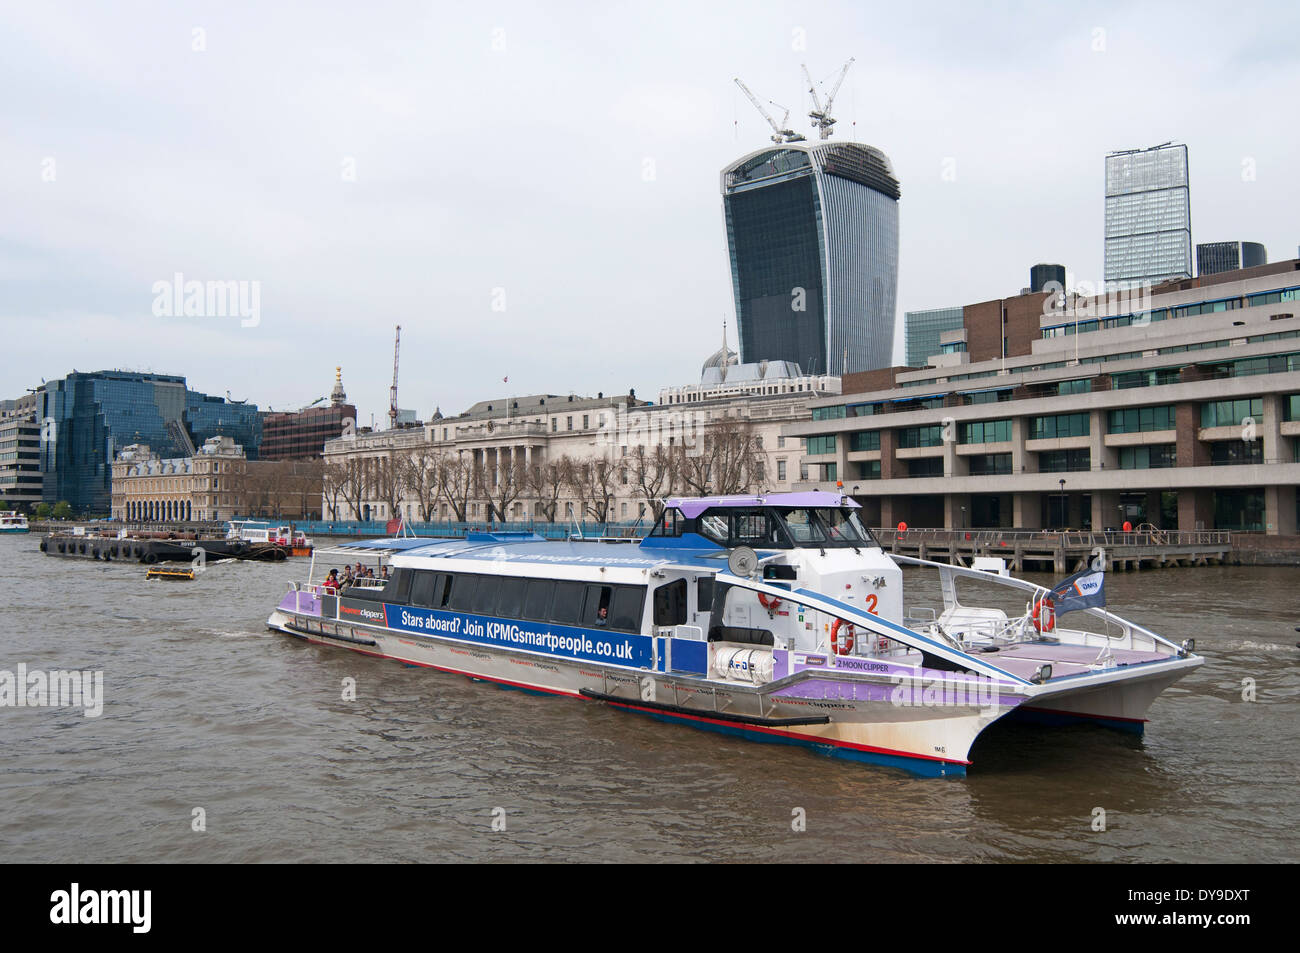 Tourist boat sails along the River Thames, London, England, UK - Stock Image